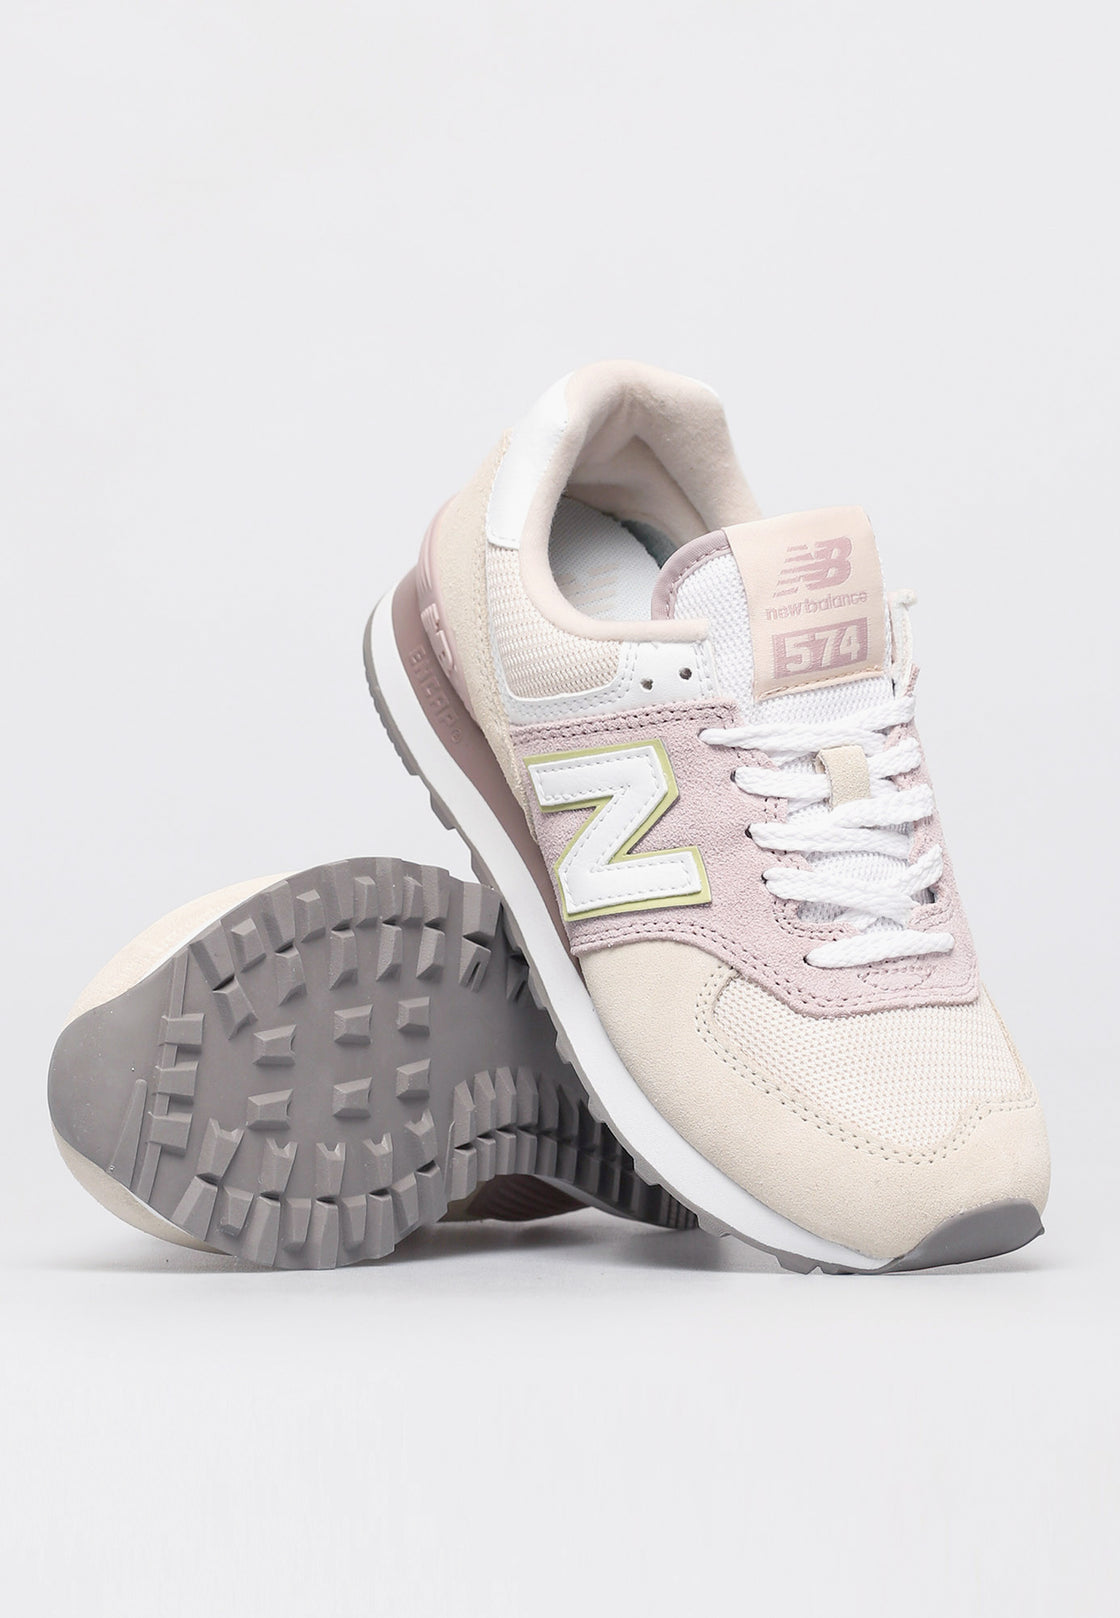 Womens 574 - pink